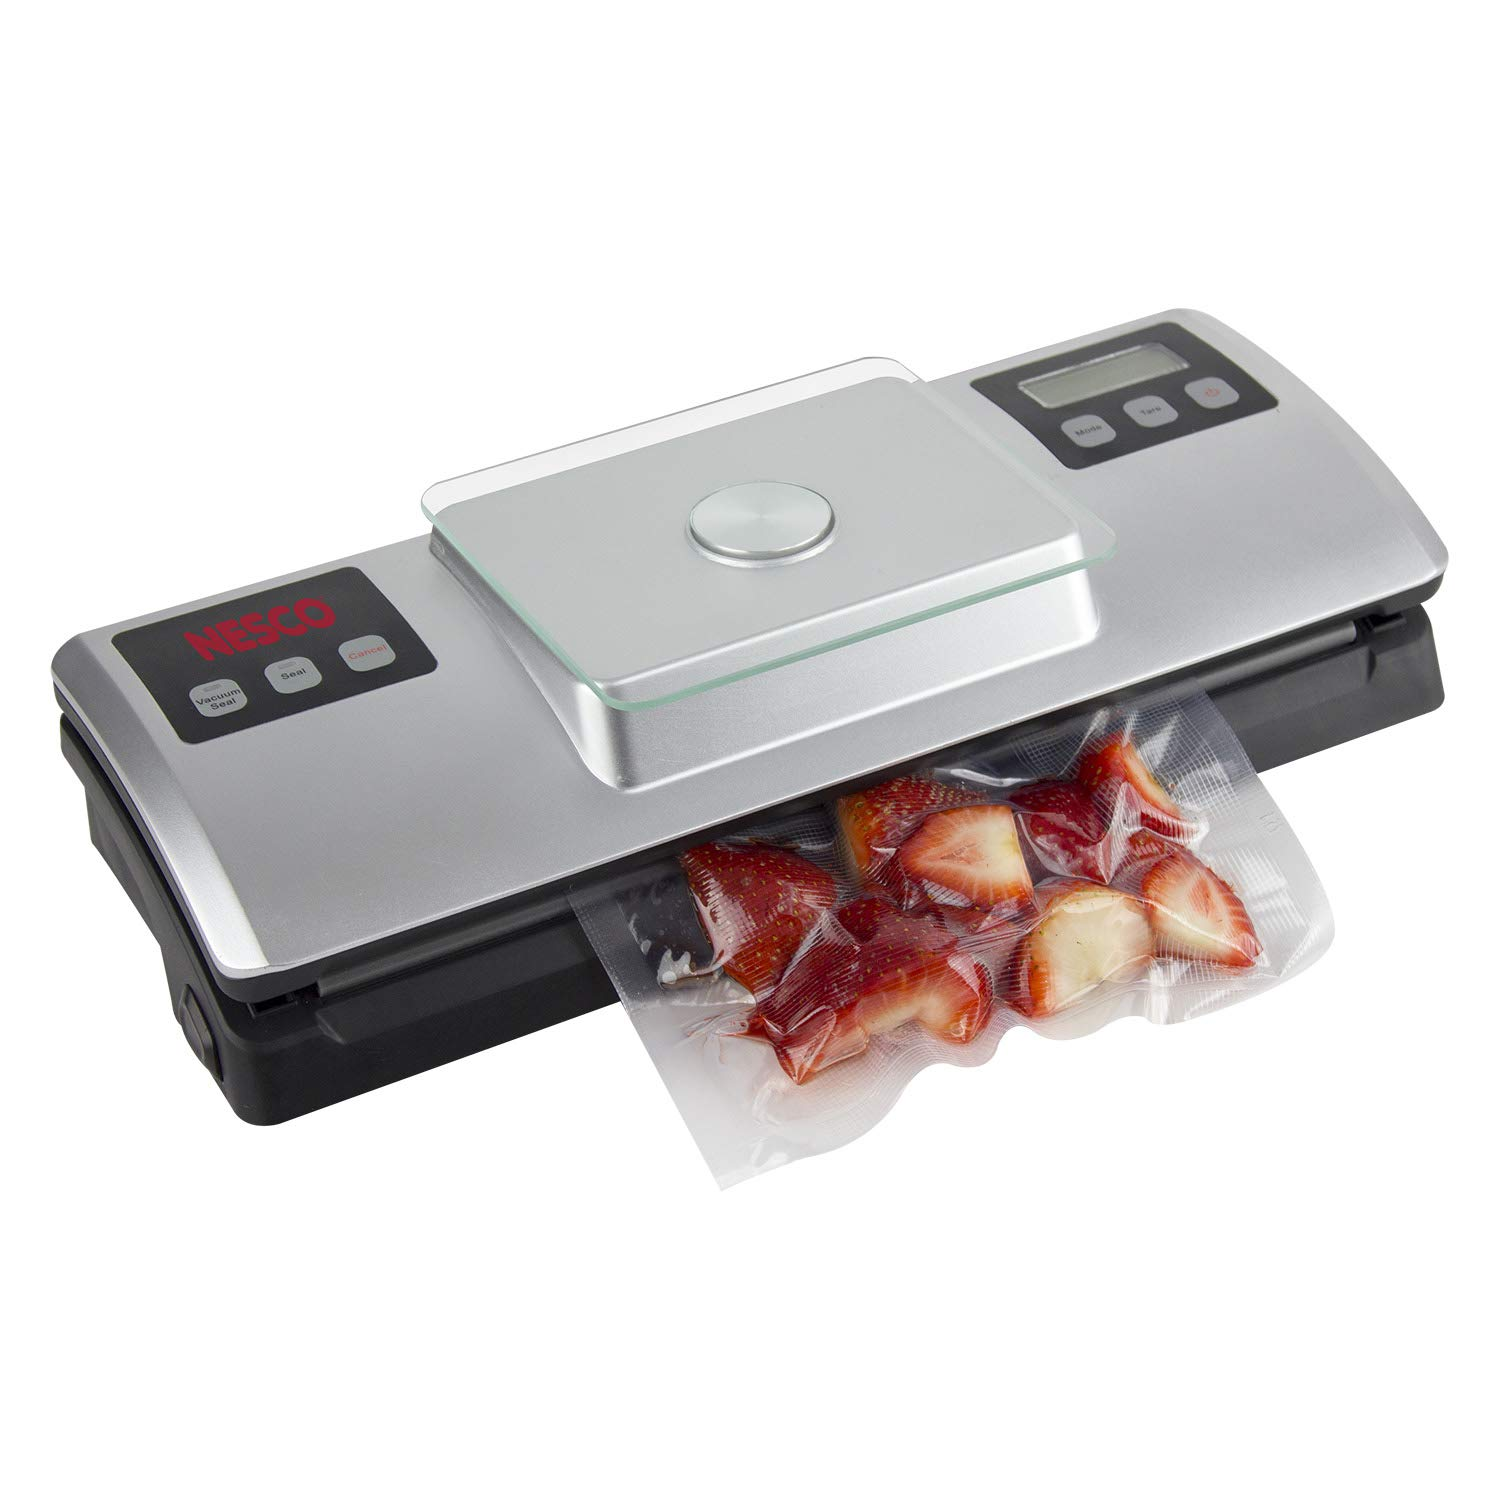 Nesco VSS-01 Automatic Food Vacuum Sealer with Digital Scale and Bag Starter Kit, Silver